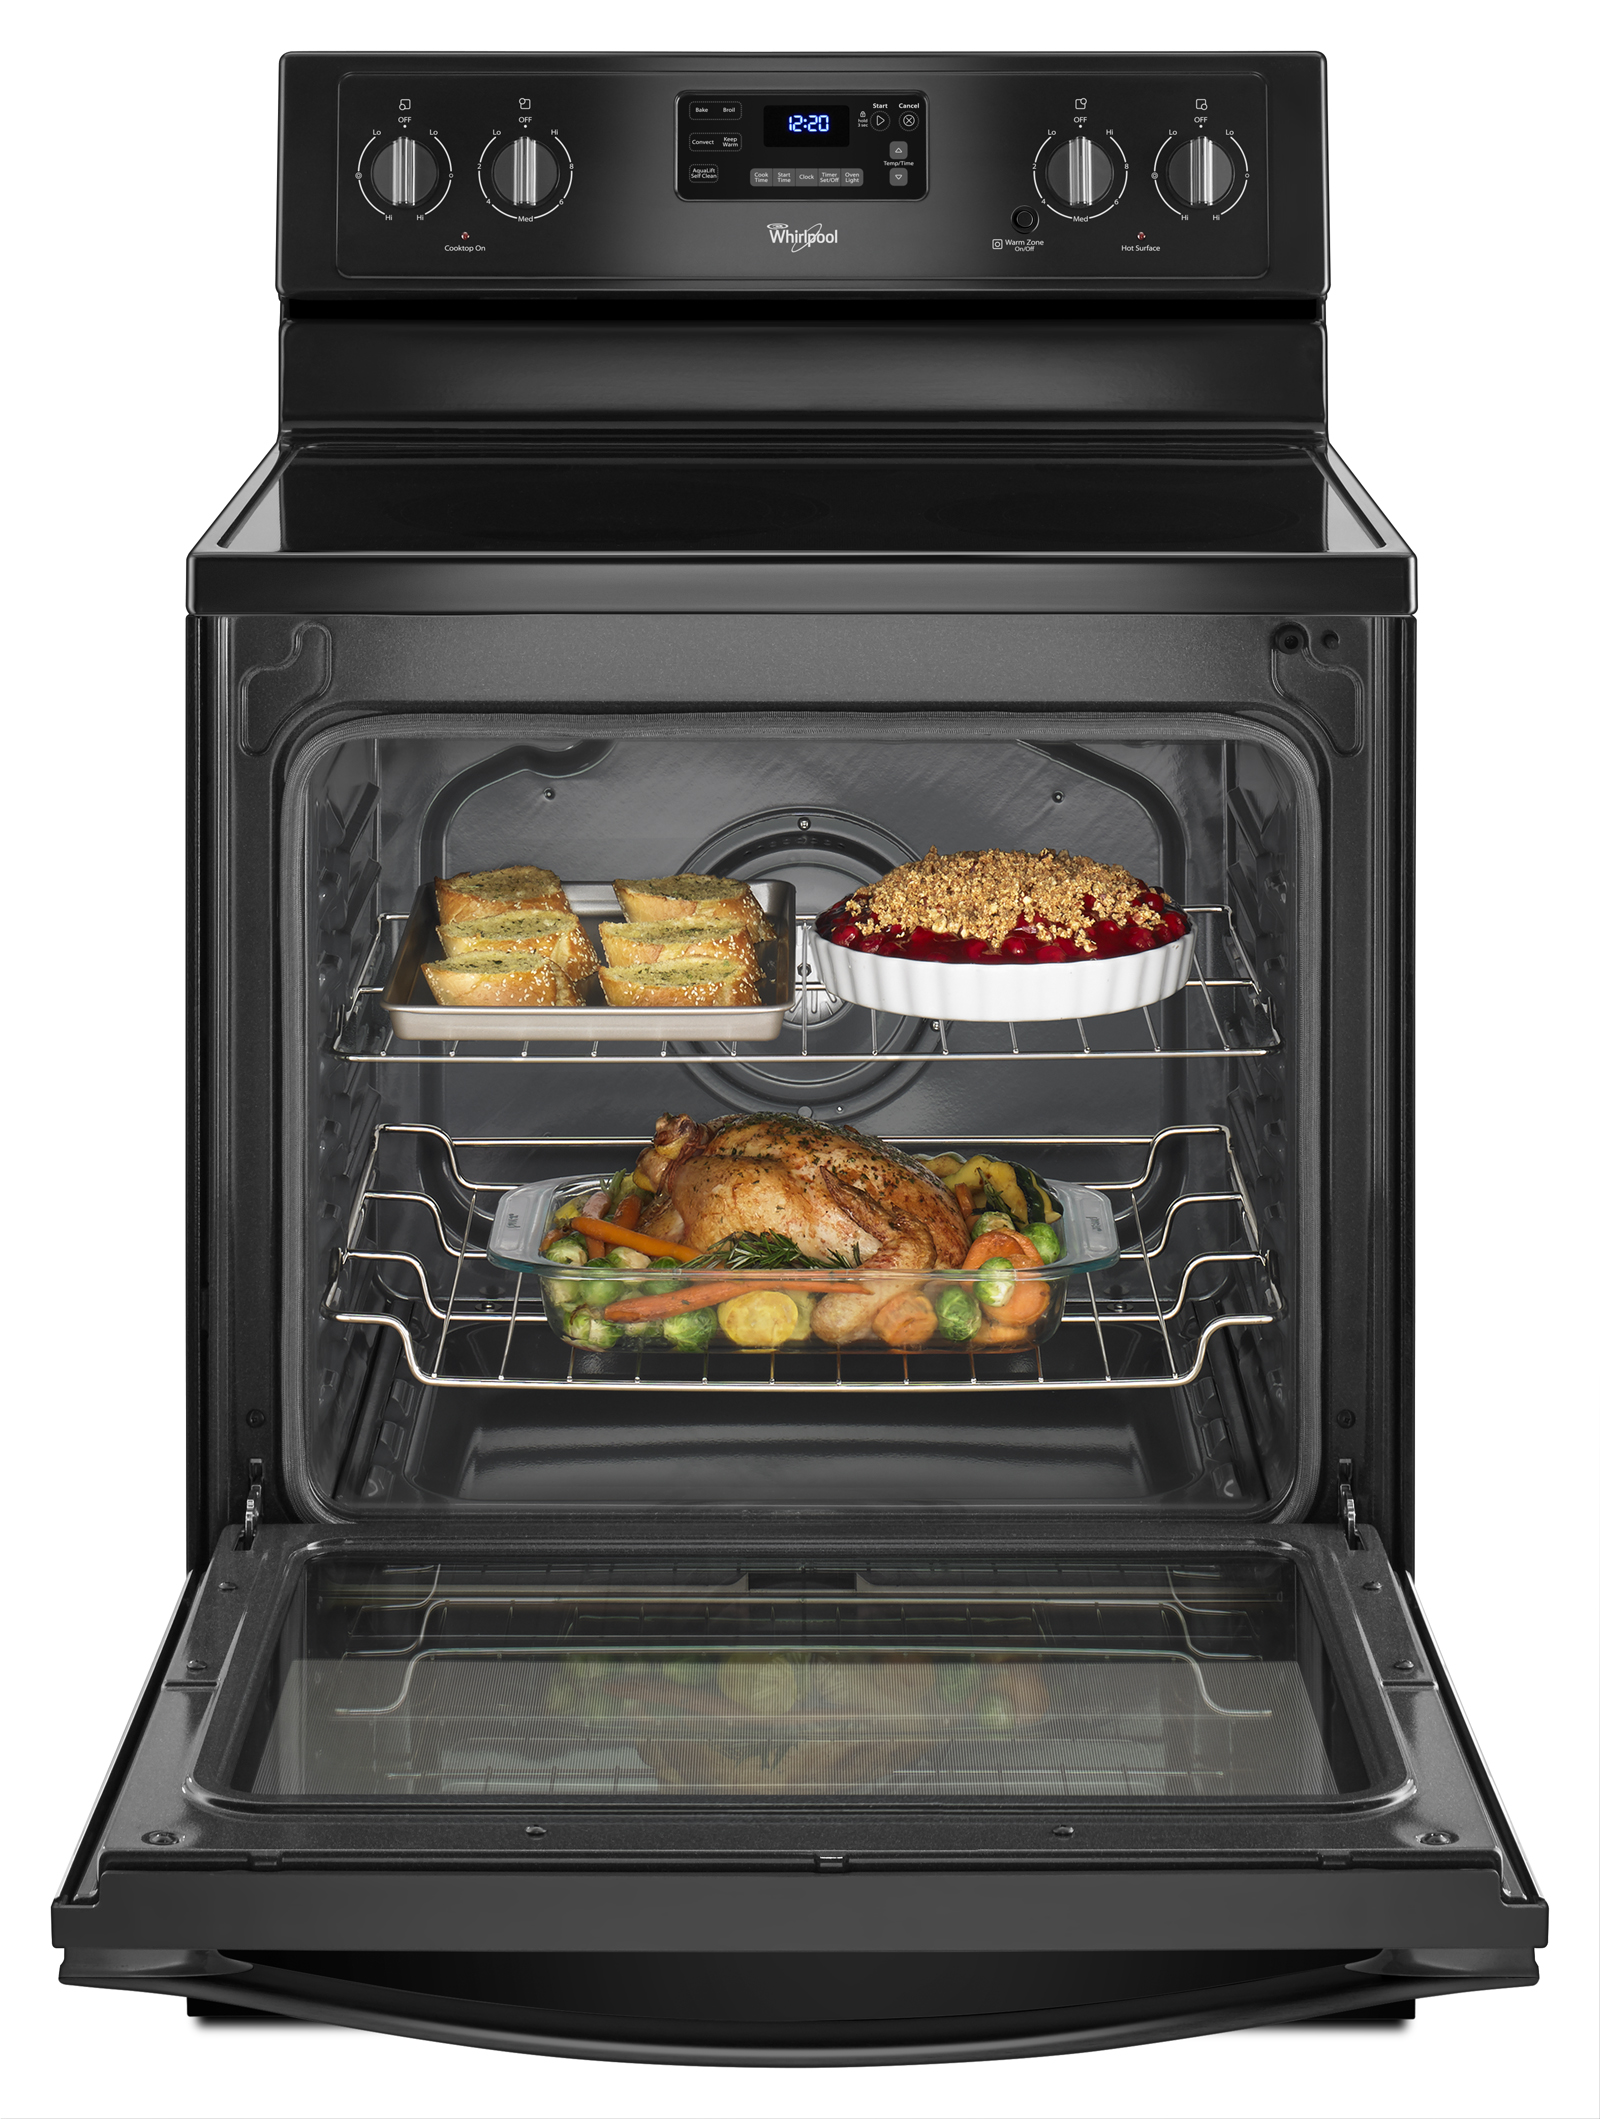 Whirlpool WFE540H0EB 6.4 cu. ft. Freestanding Electric Range - Black